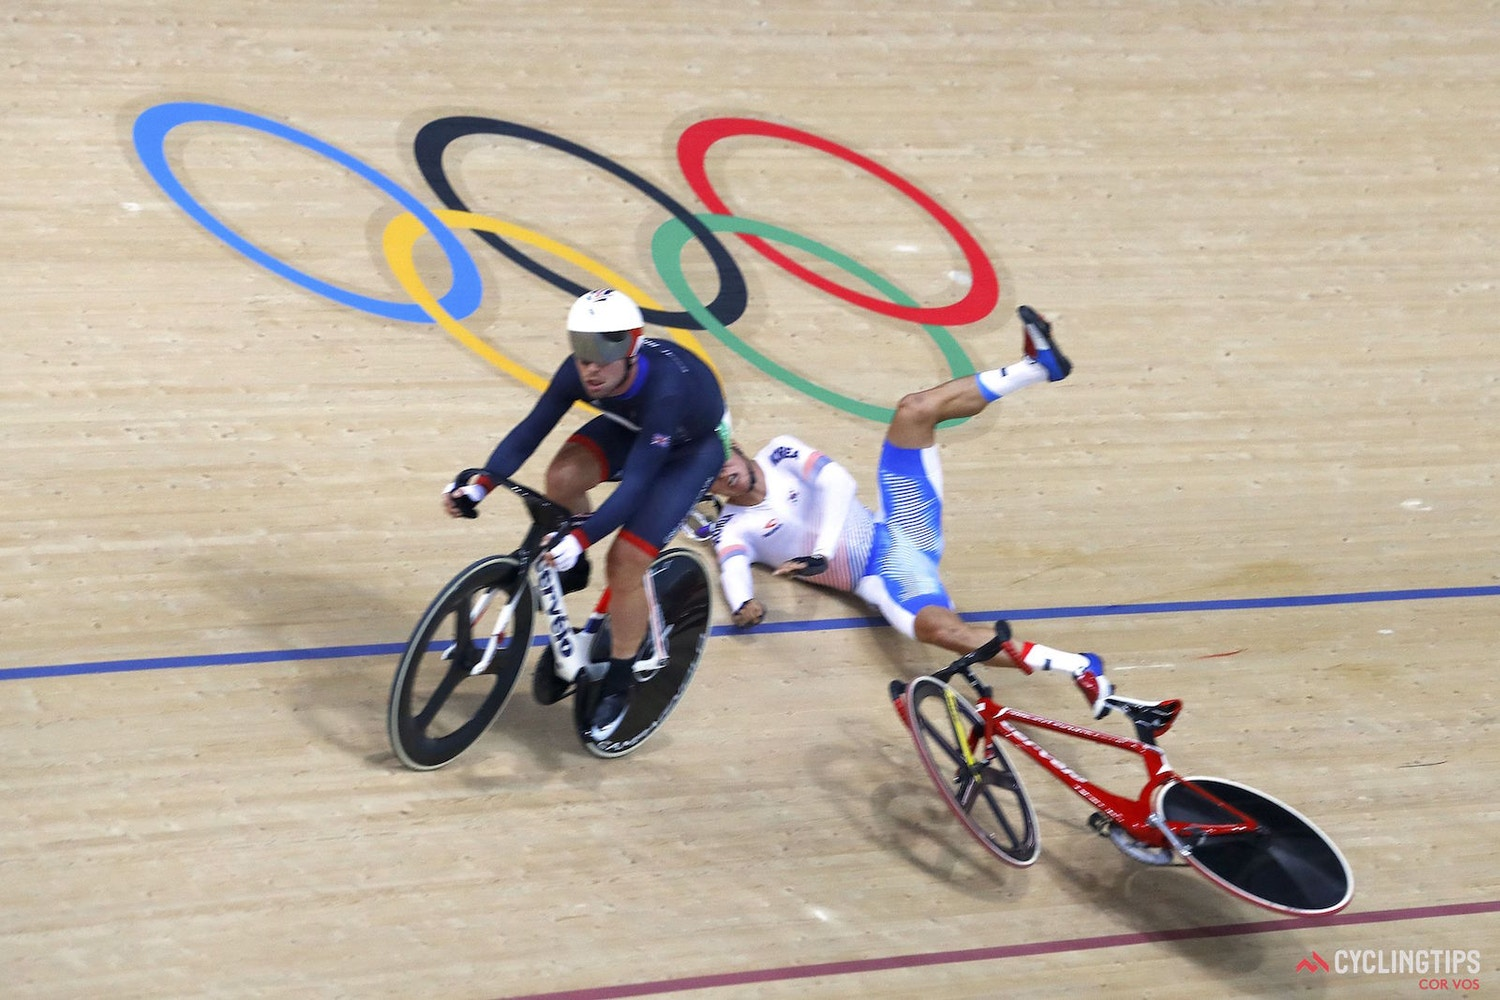 Mixed reactions as Cavendish causes Olympic omnium crash